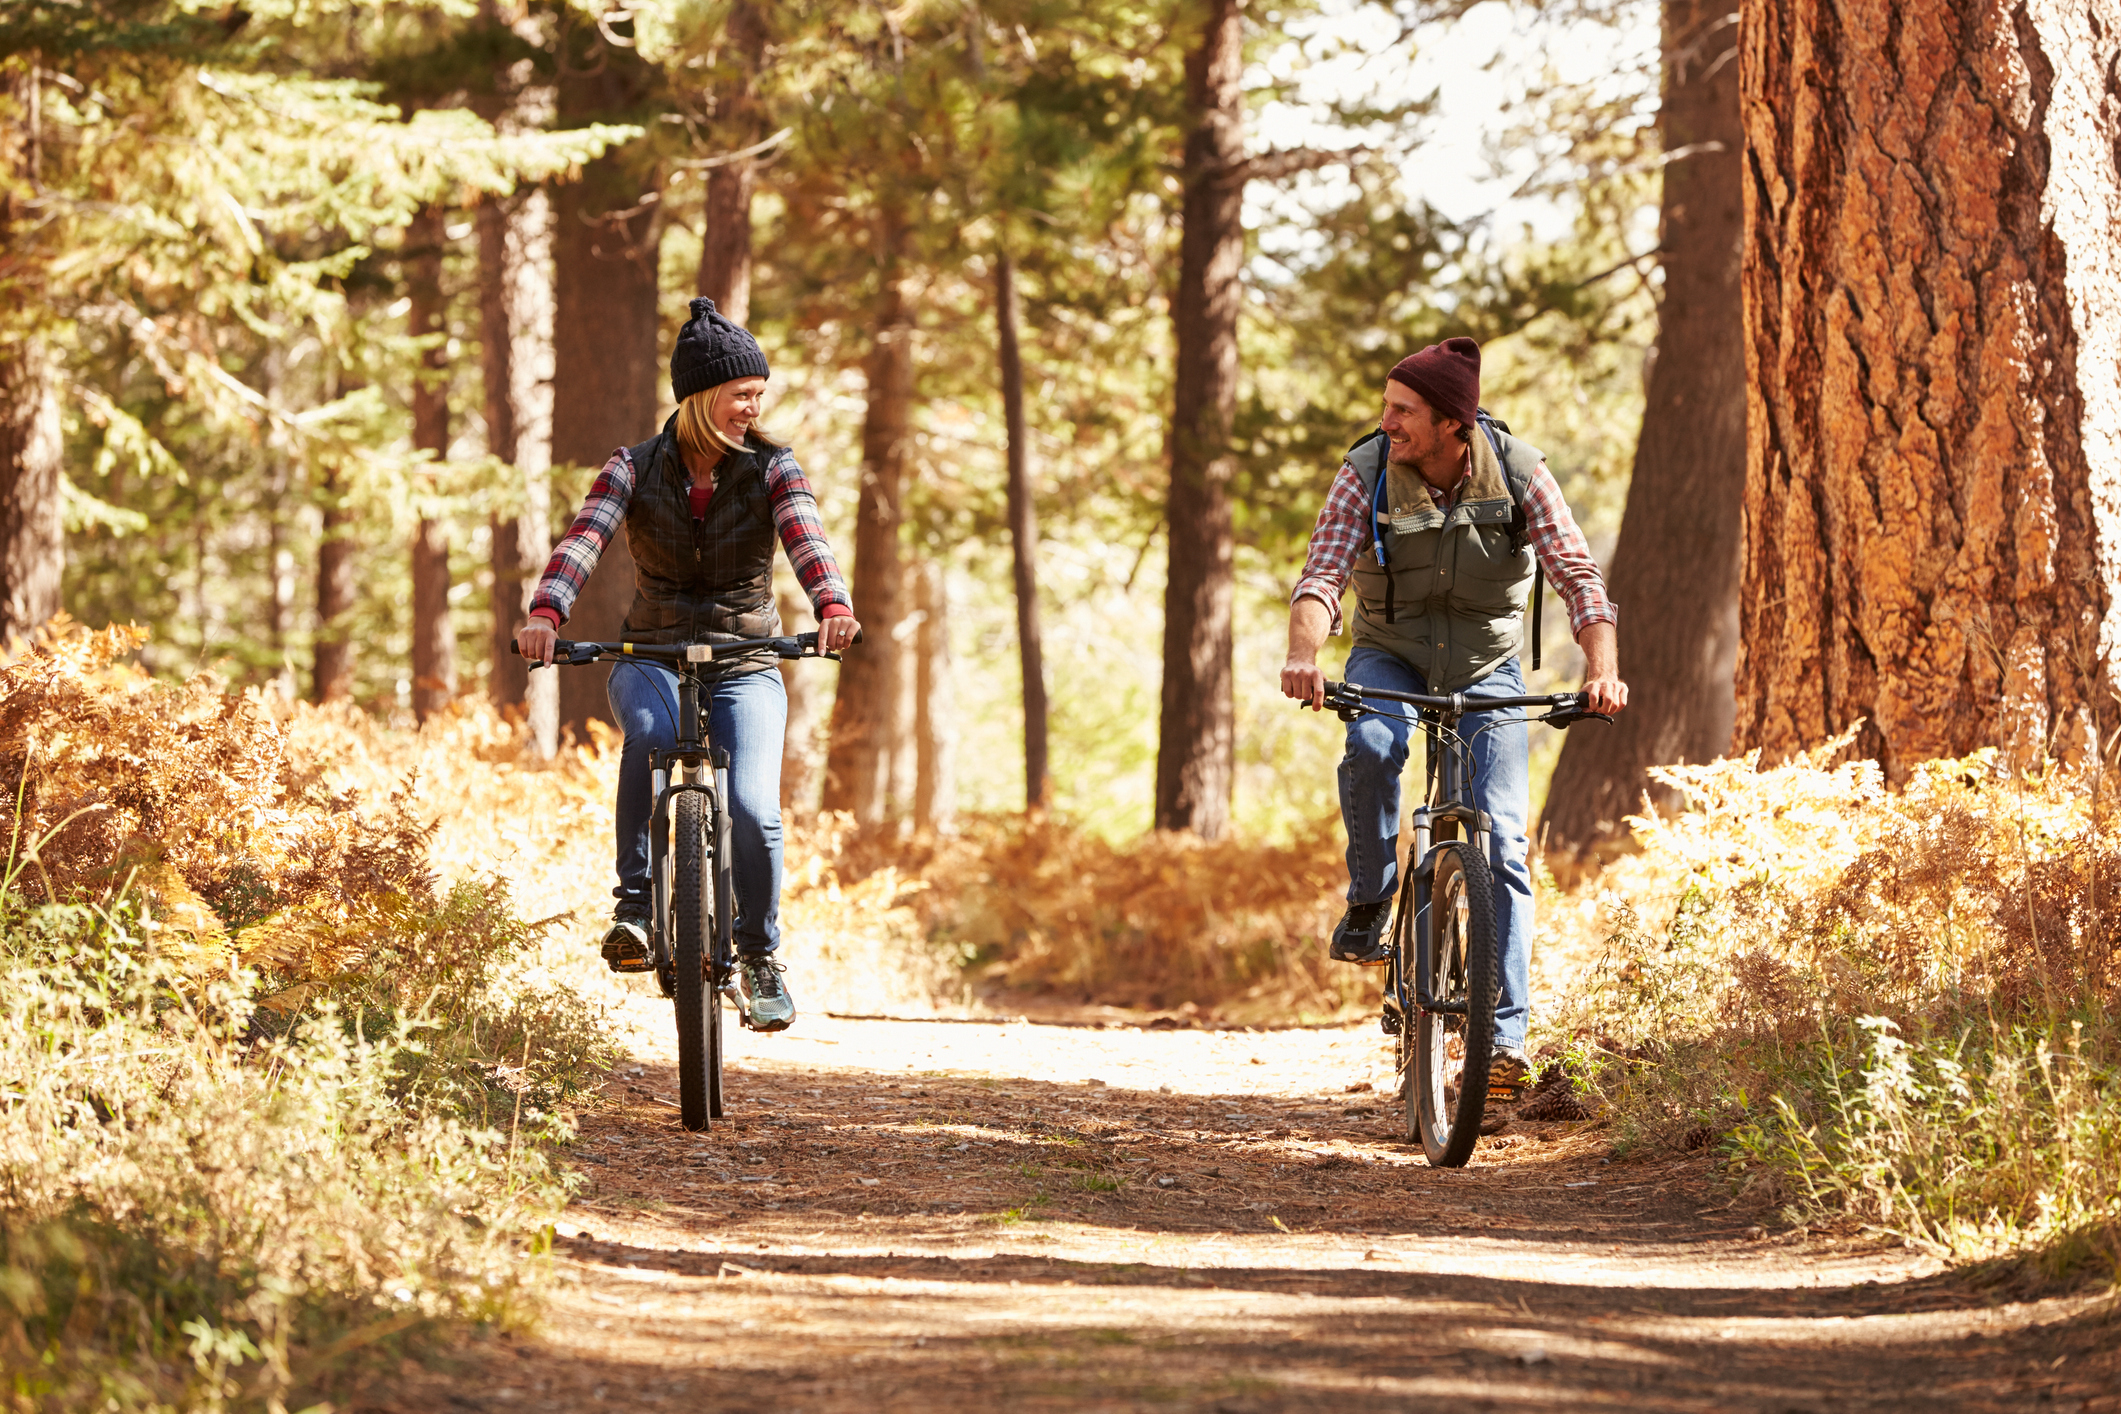 Two people social distancing while riding bikes in the fall.